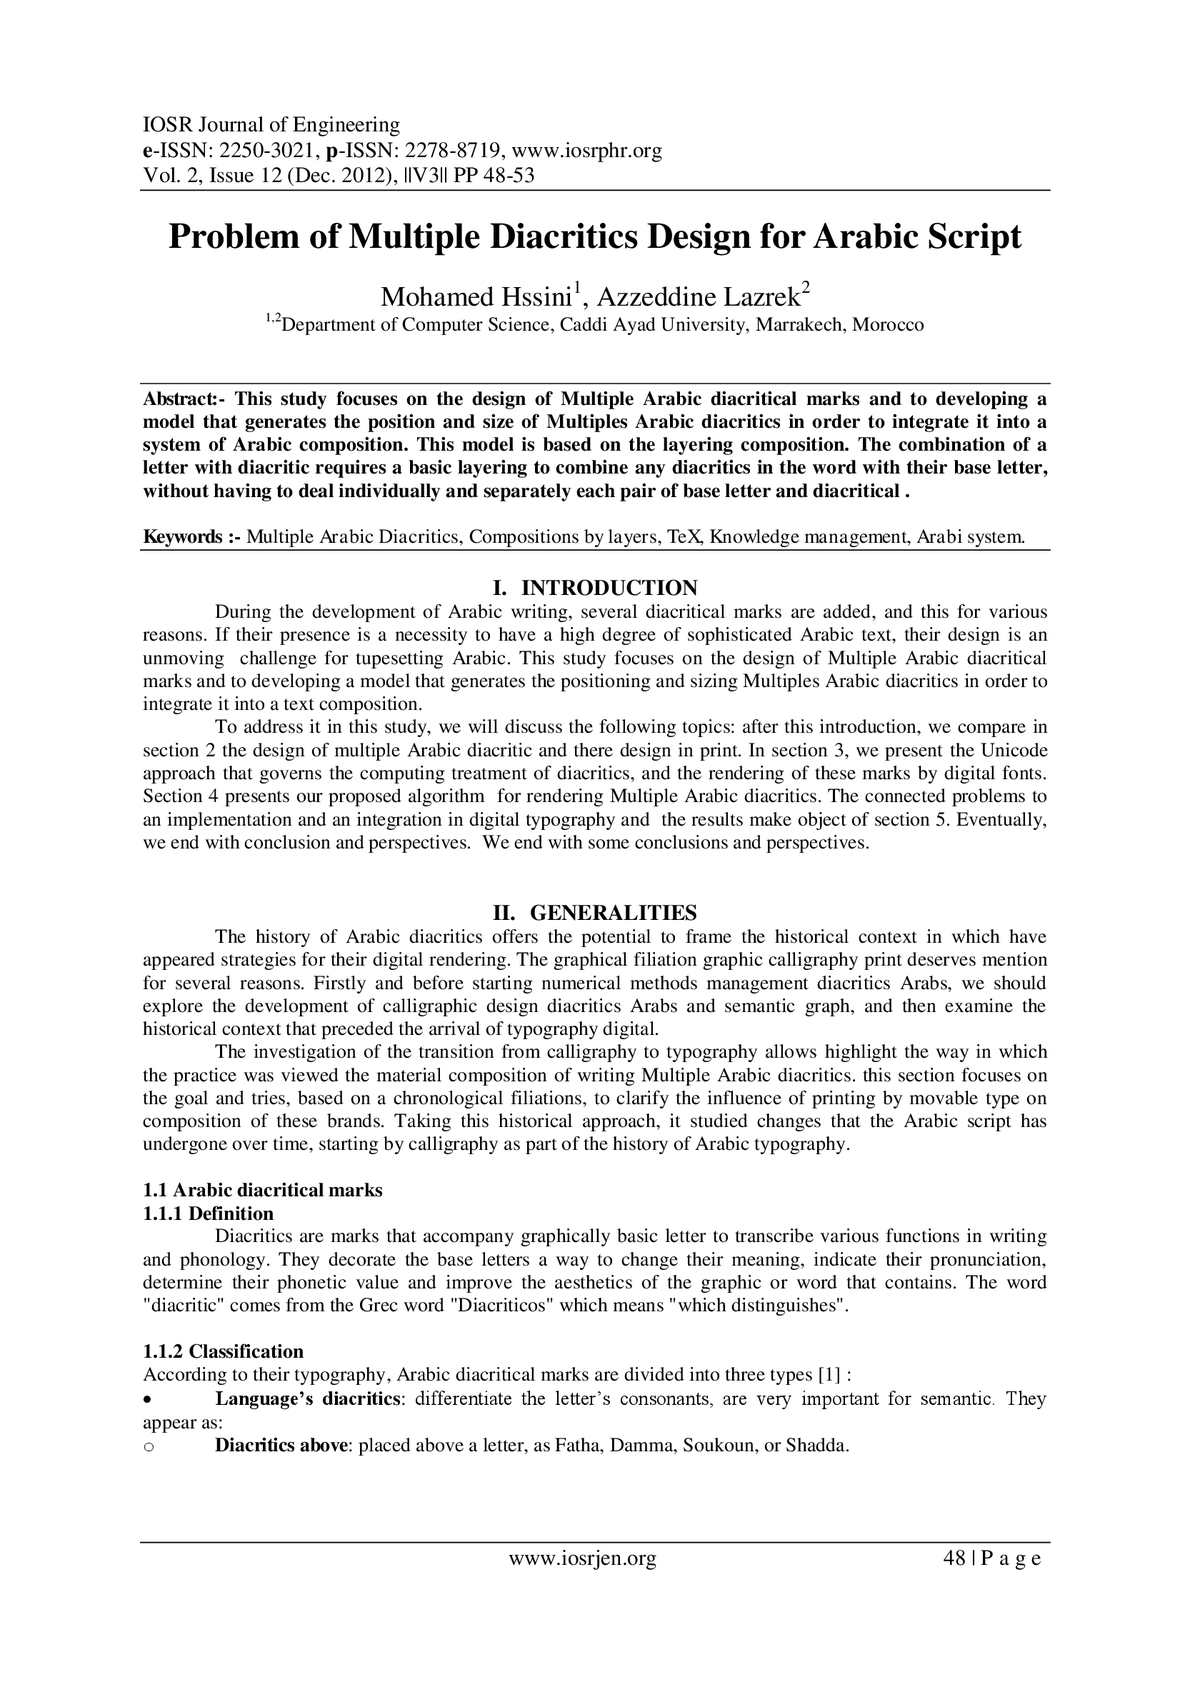 Calaméo - IOSRJEN : hard copy, certificates, Call for Papers 2012